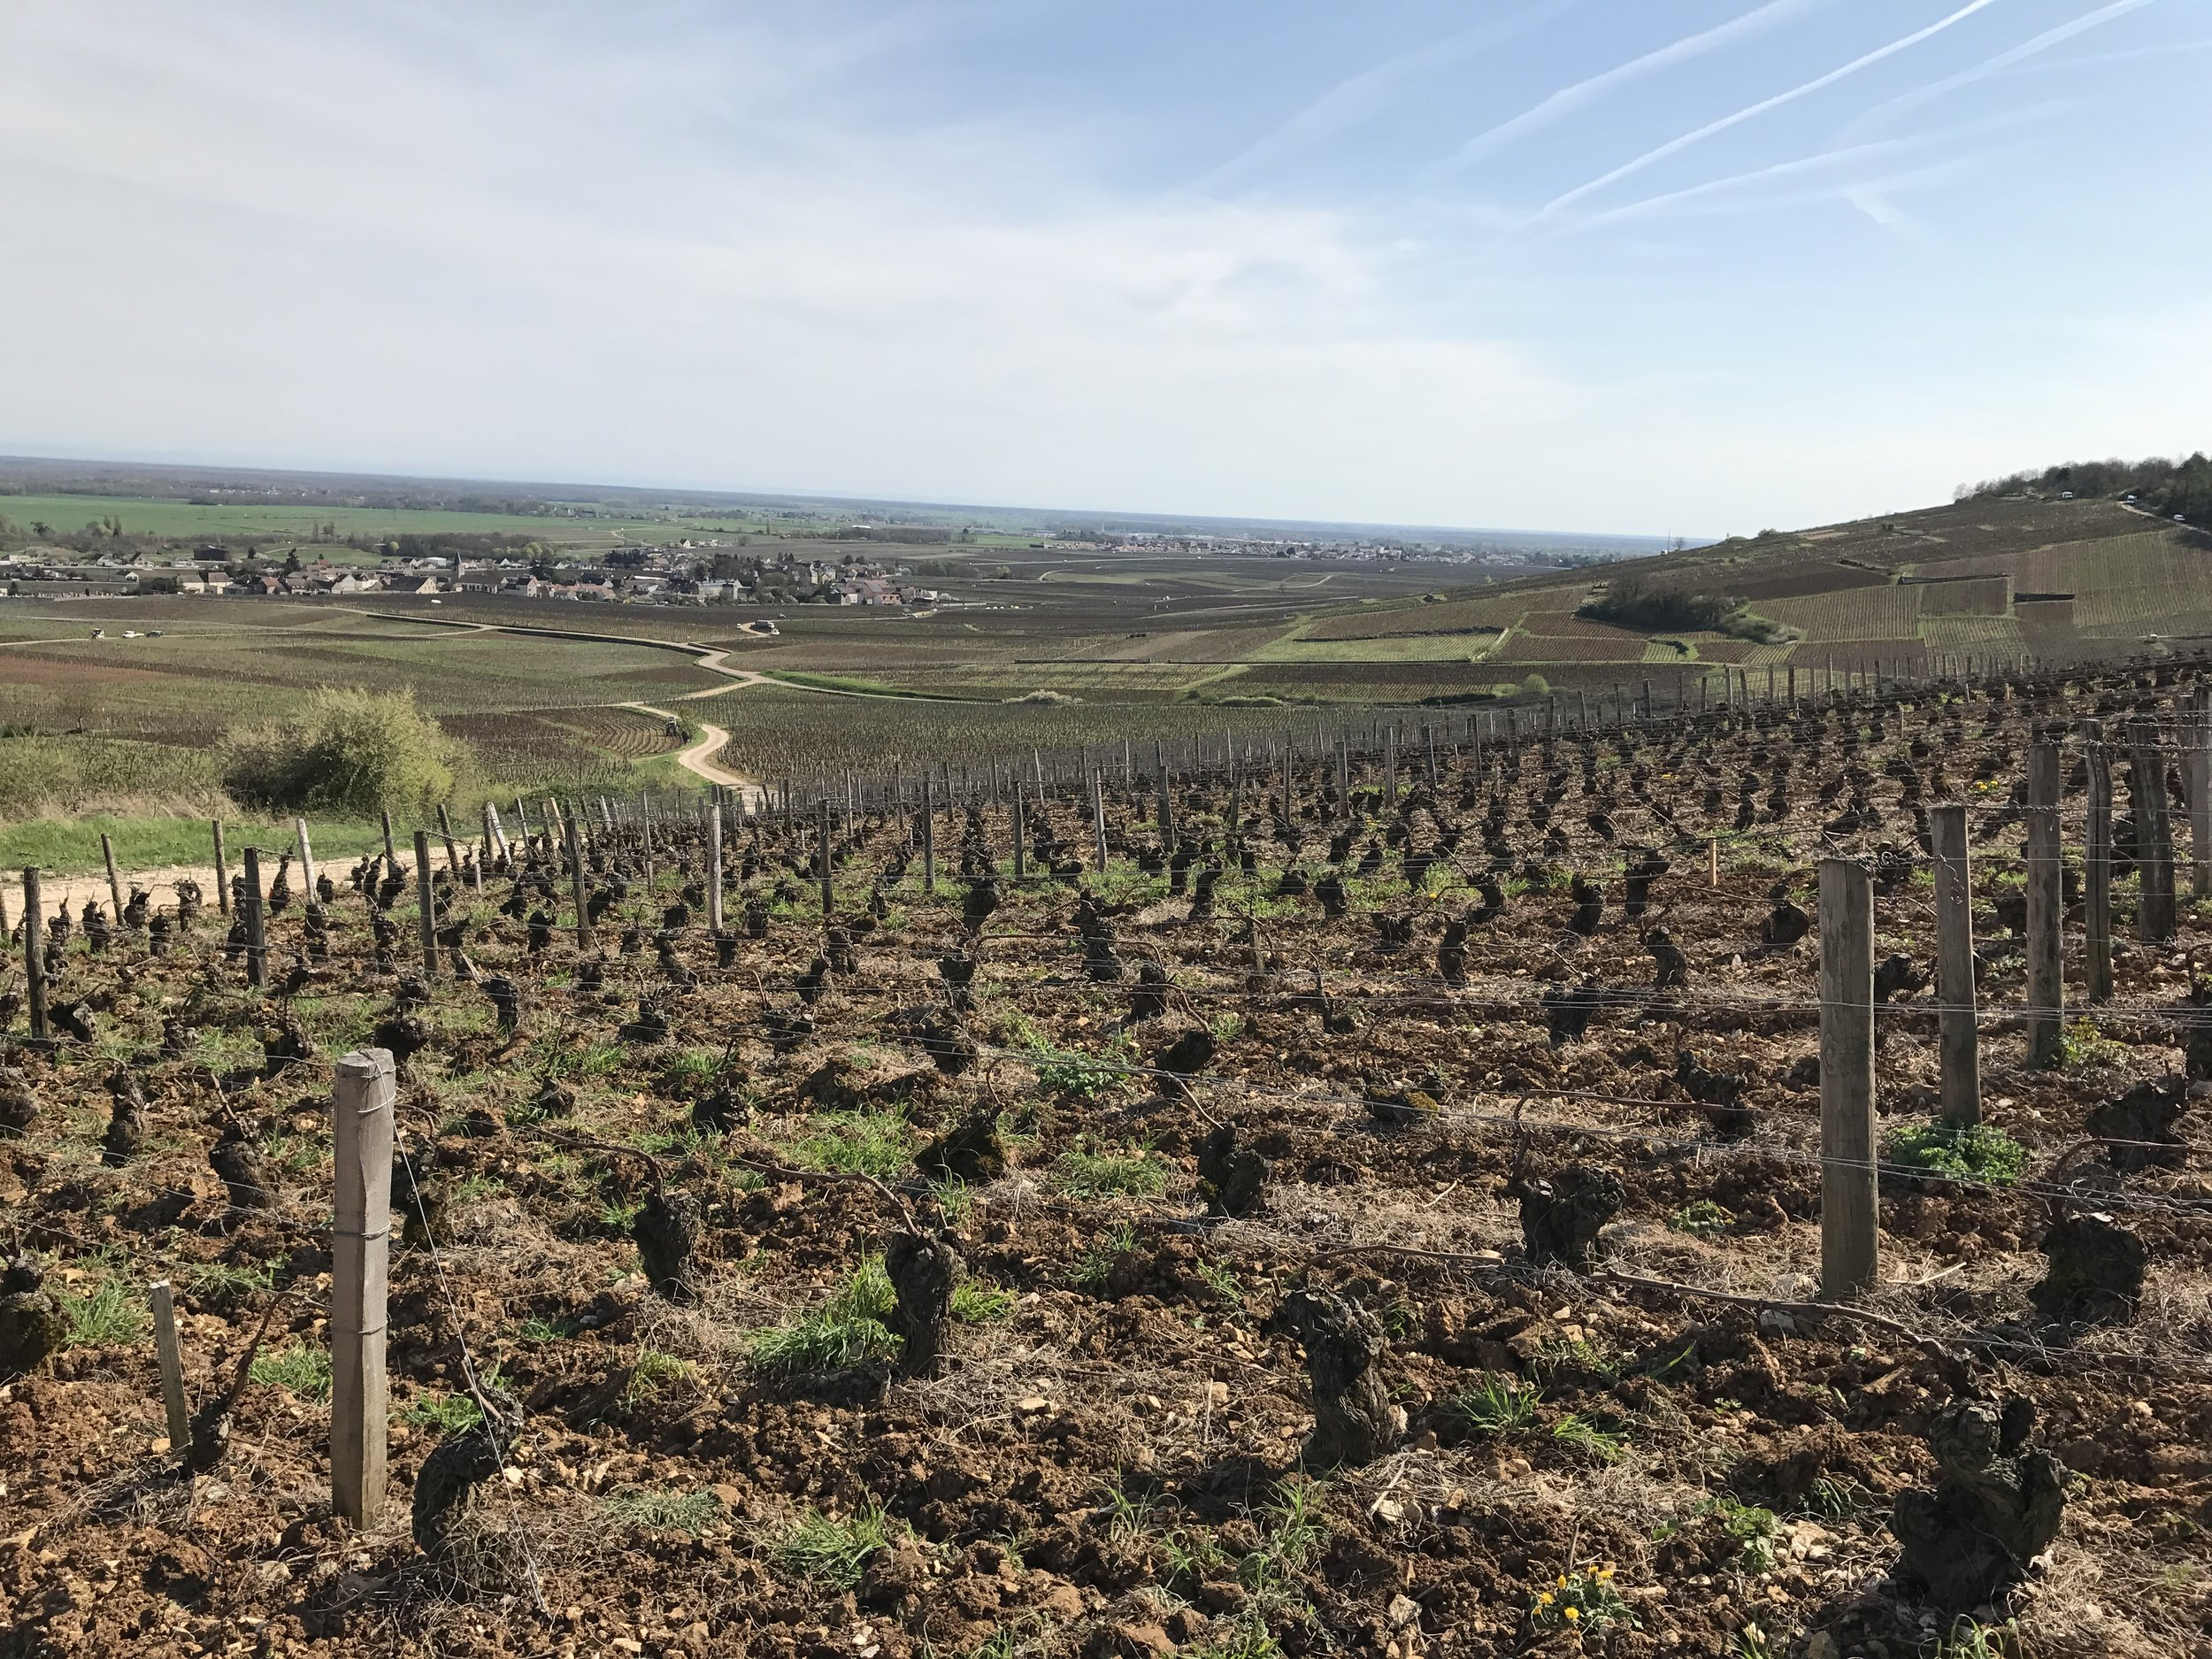 The vineyards of Bourgogne